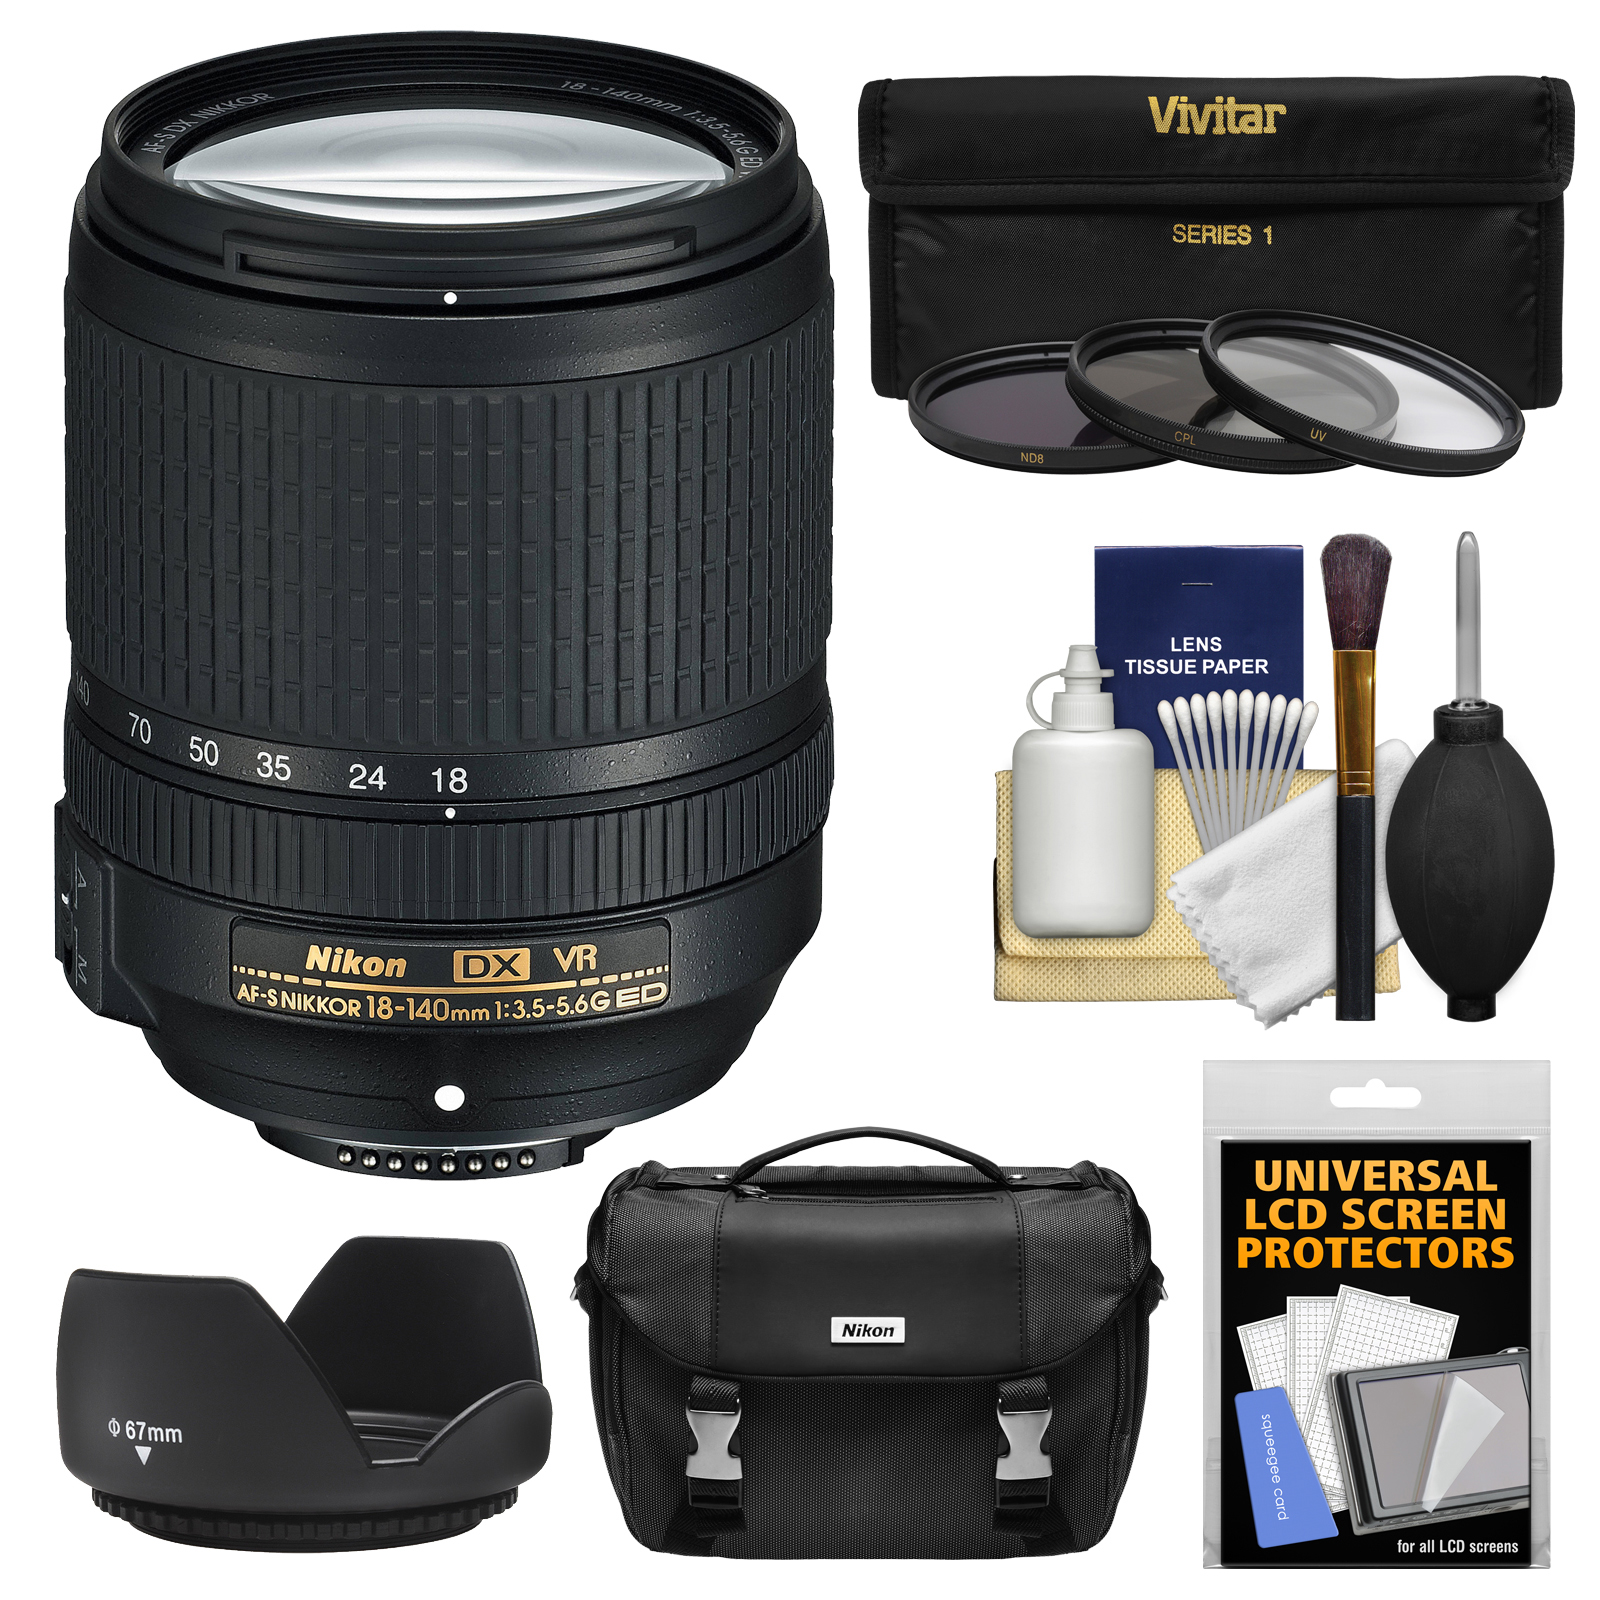 Nikon 18-140mm f/3.5-5.6G VR DX ED AF-S Lens with Case + 3 UV/CPL/ND8 Filters + Hood Bundle for D3200, D3300, D5300, D5500, D7100, D7200 Cameras